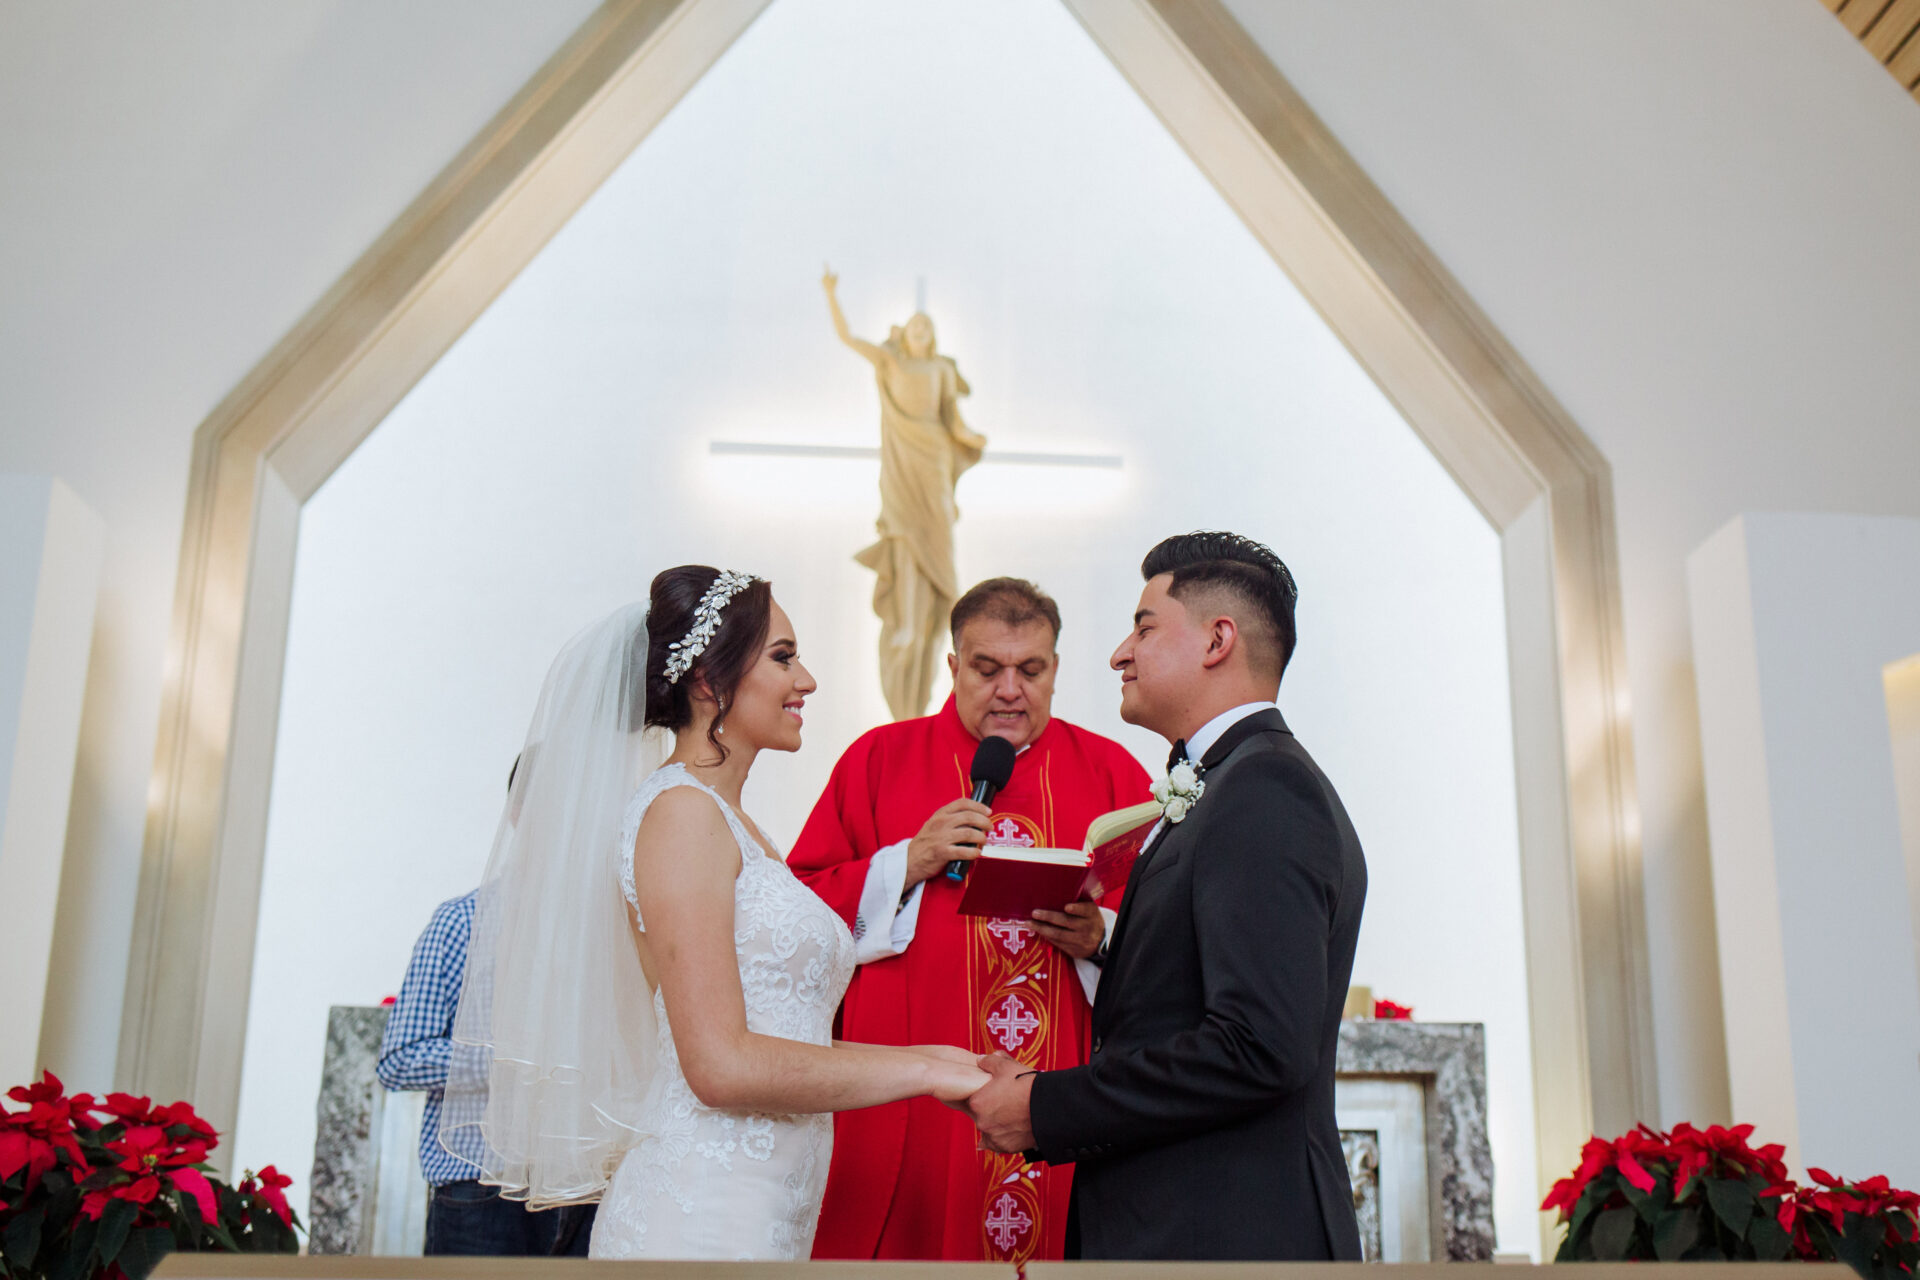 javier_noriega_fotografo_Boda_san_ramon_zacatecas_wedding_photographer8